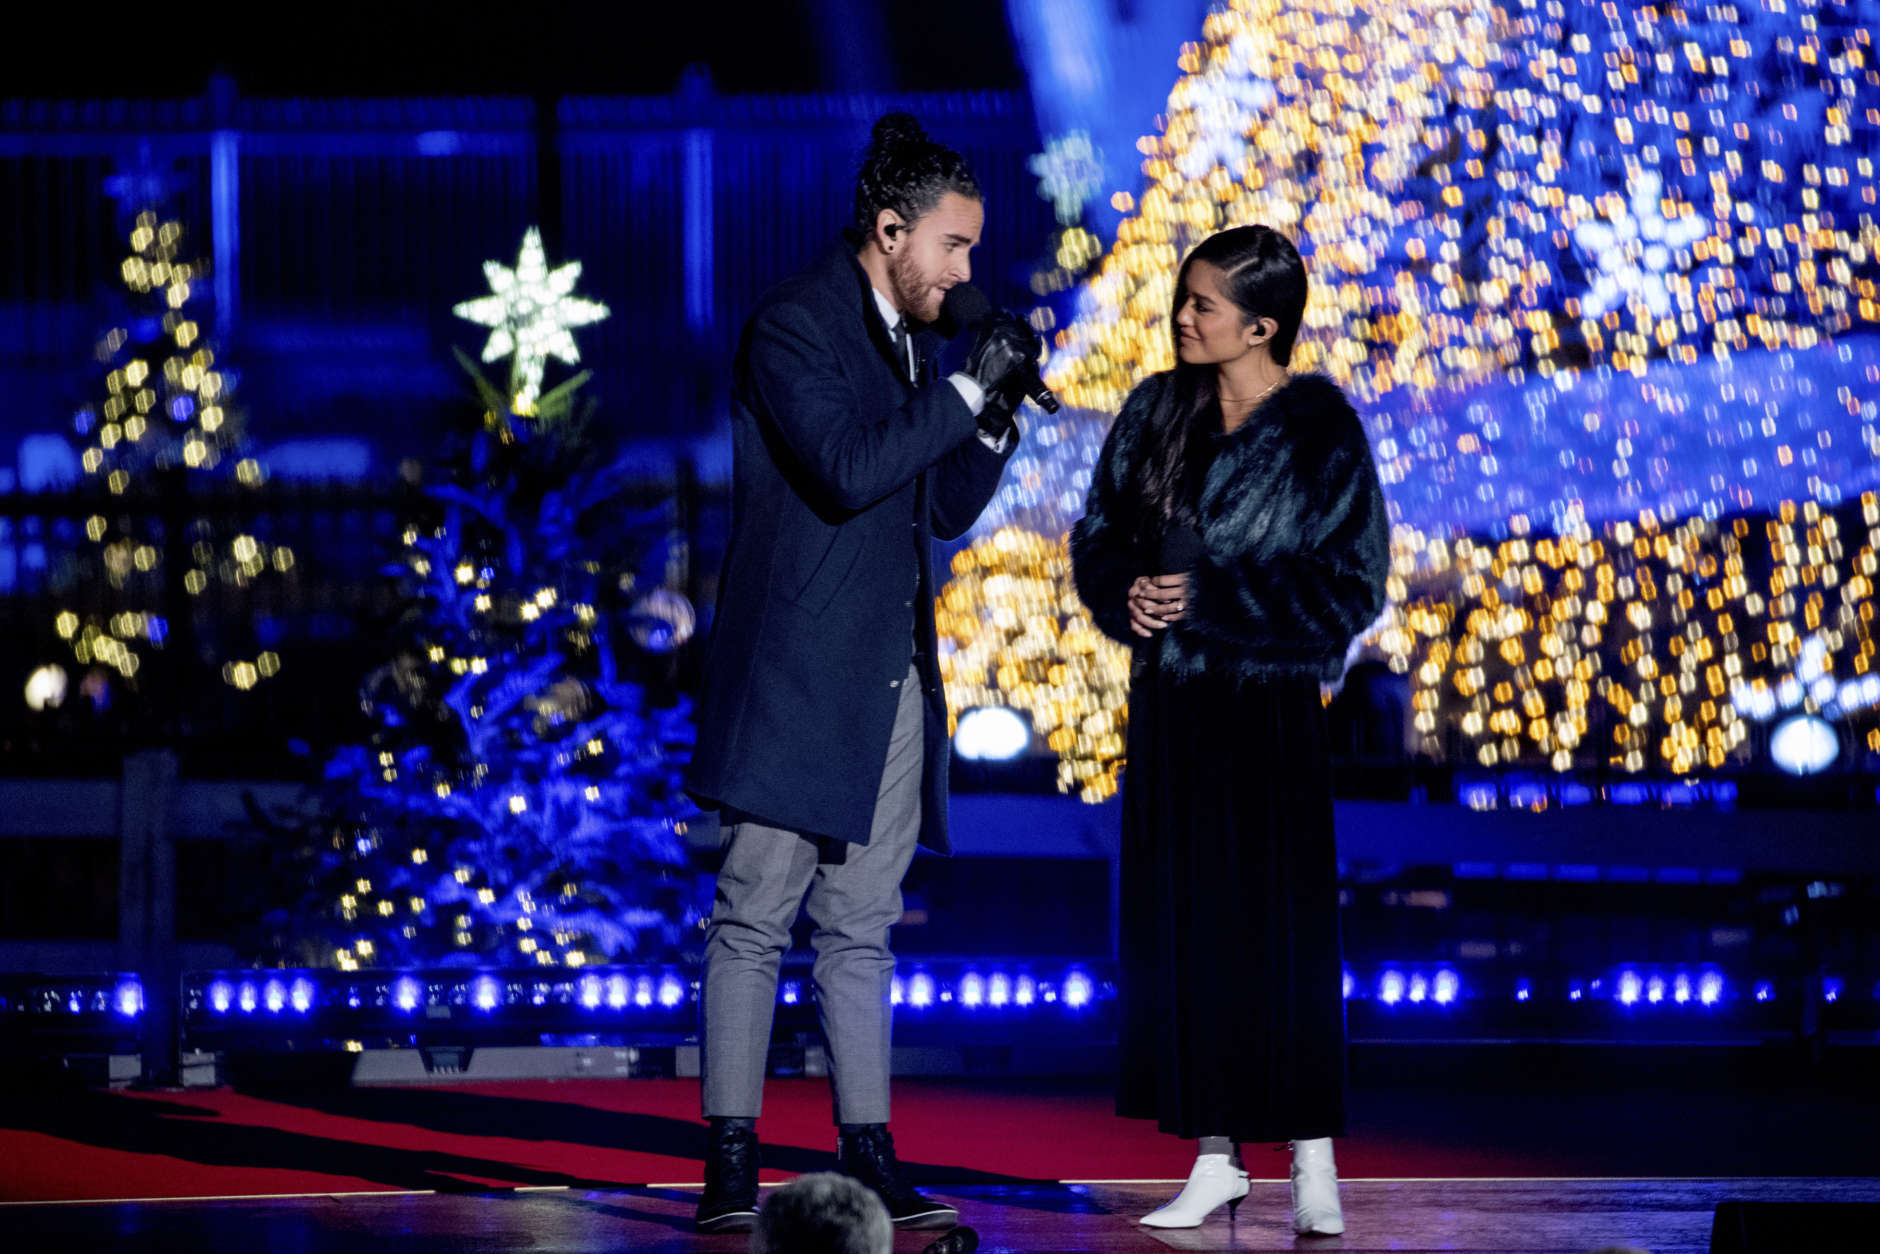 Us The Duo featuring Michael and Carissa Alvarado perform during the lighting ceremony for the 2017 National Christmas Tree on the Ellipse near the White House, Thursday, Nov. 30, 2017, in Washington. (AP Photo/Andrew Harnik)